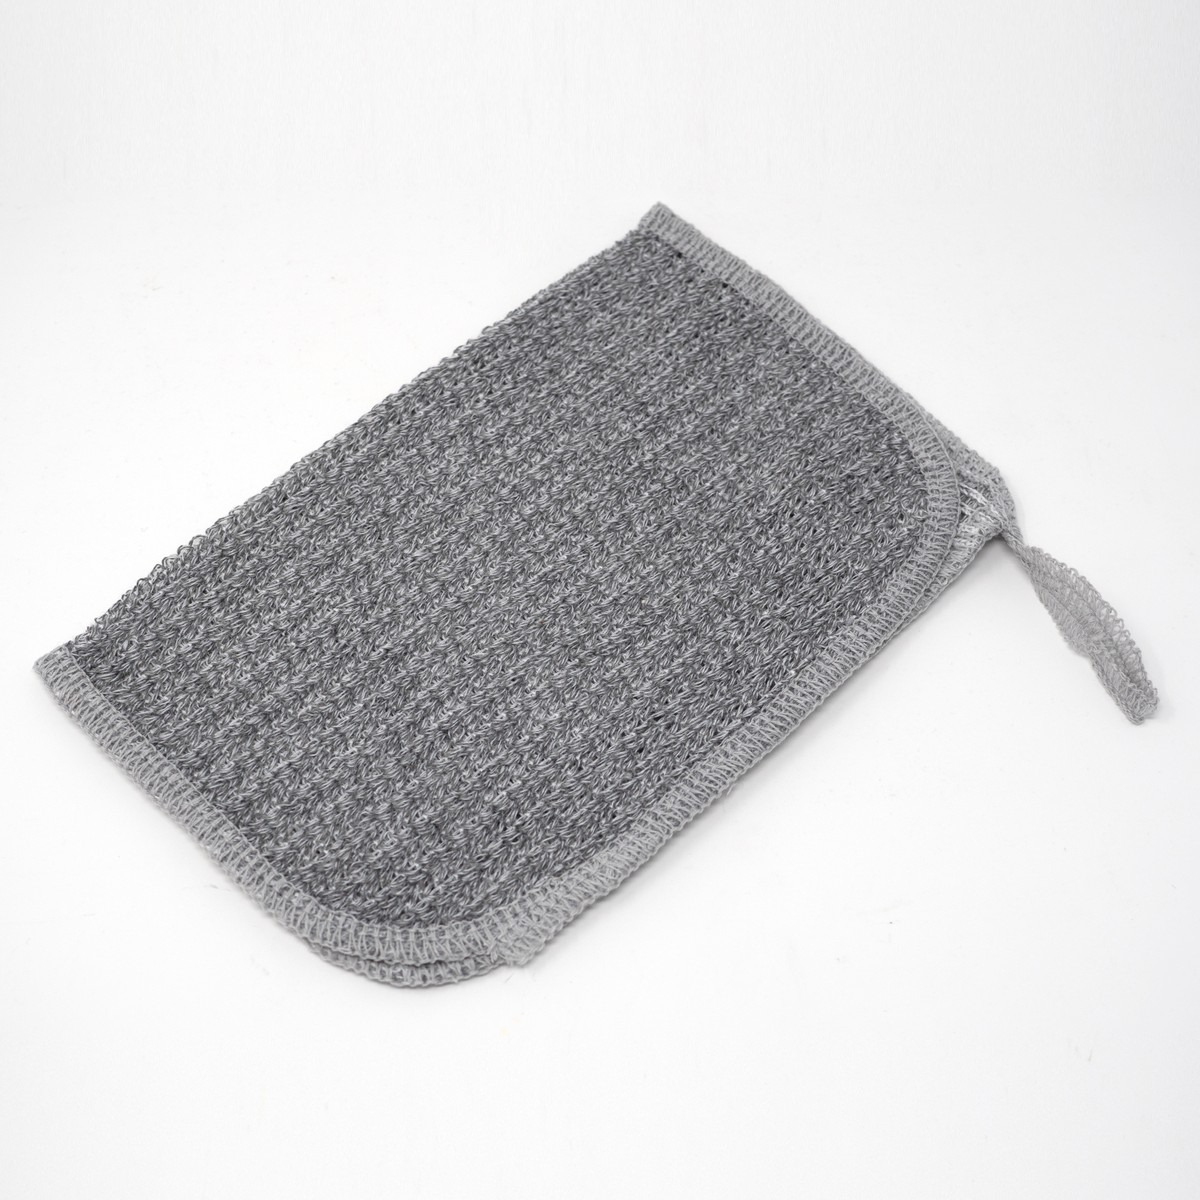 Photo of Binchotan Charcoal Face Scrub Towel